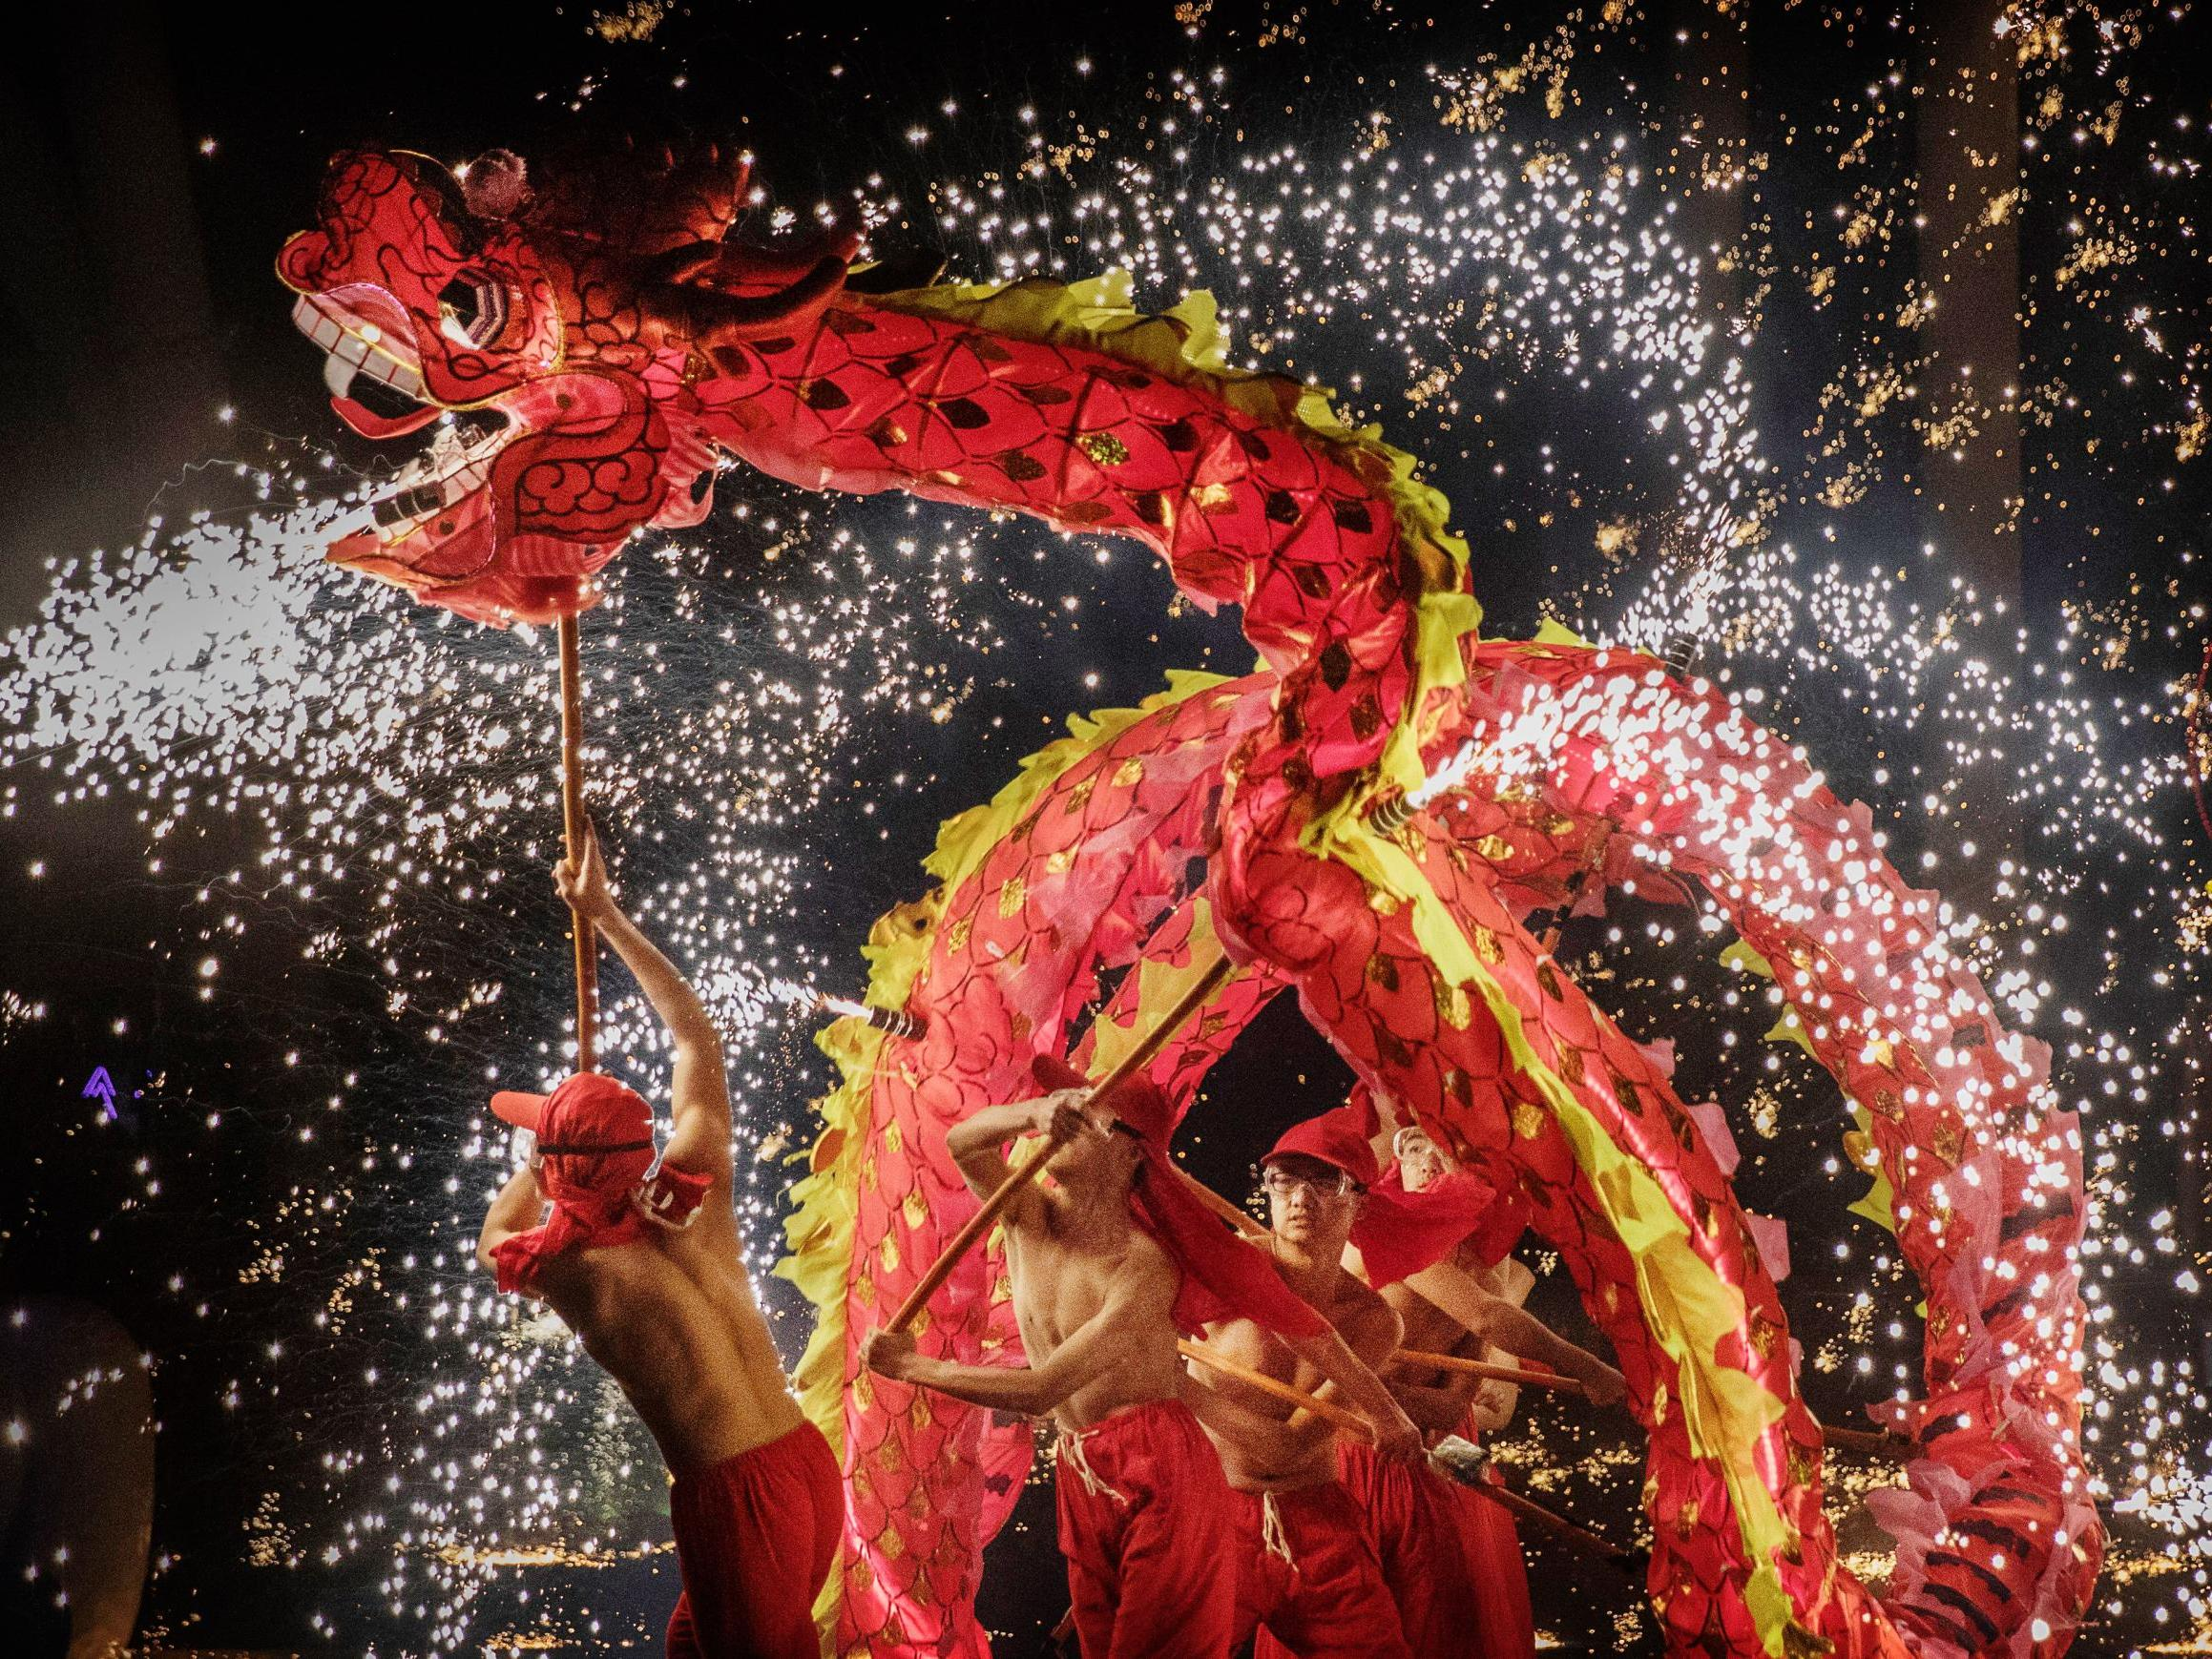 Year of the Rat: When is the Chinese New Year and what is the meaning of the 2020 zodiac sign?